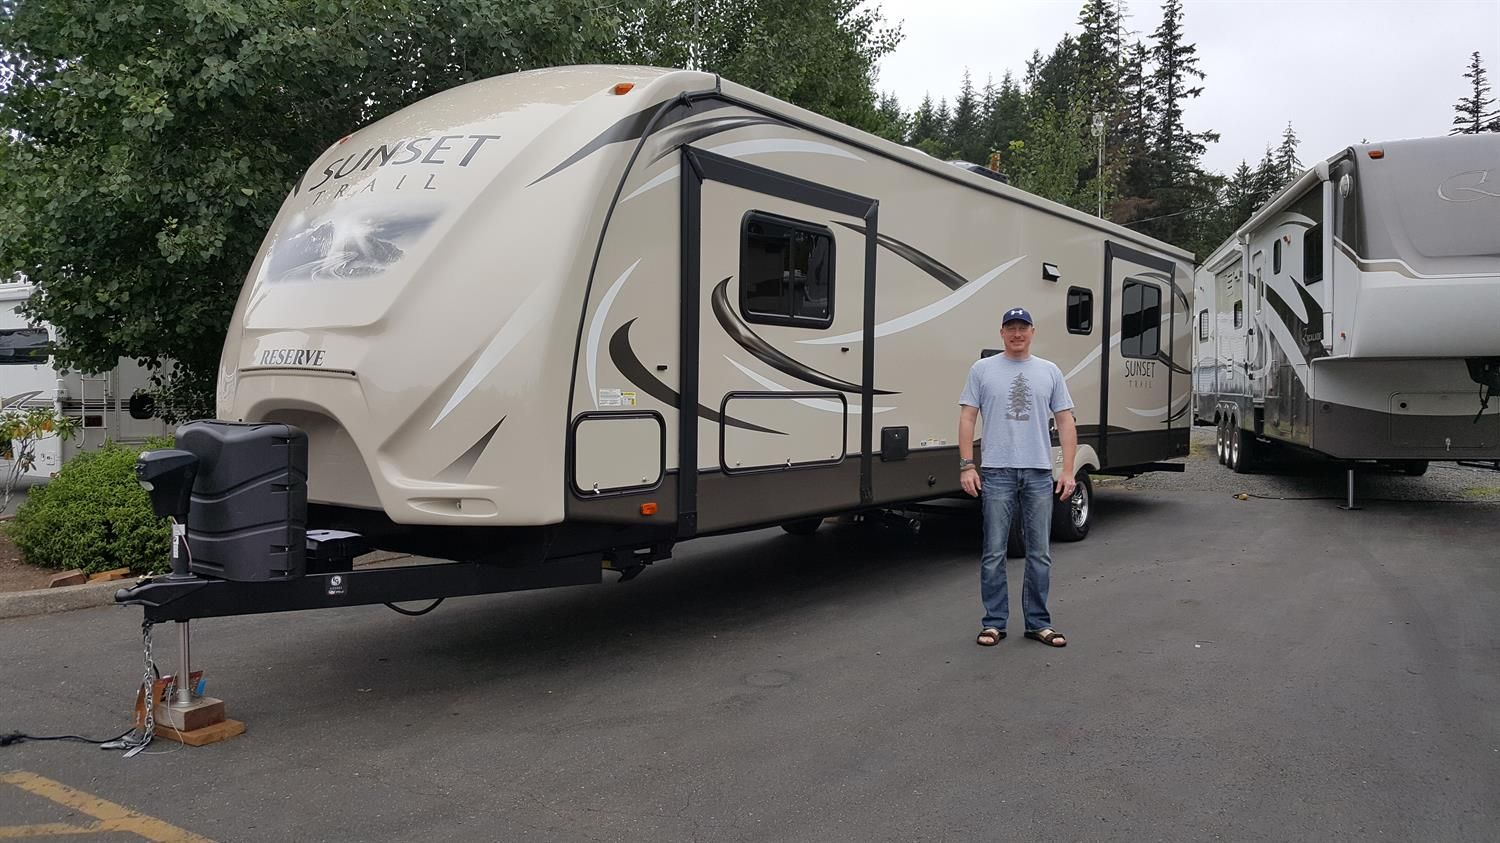 RON's new 2016 Sunset Trailer 32RE! Congratulations and best wishes from Clear Creek RV Center and Ted Strong.